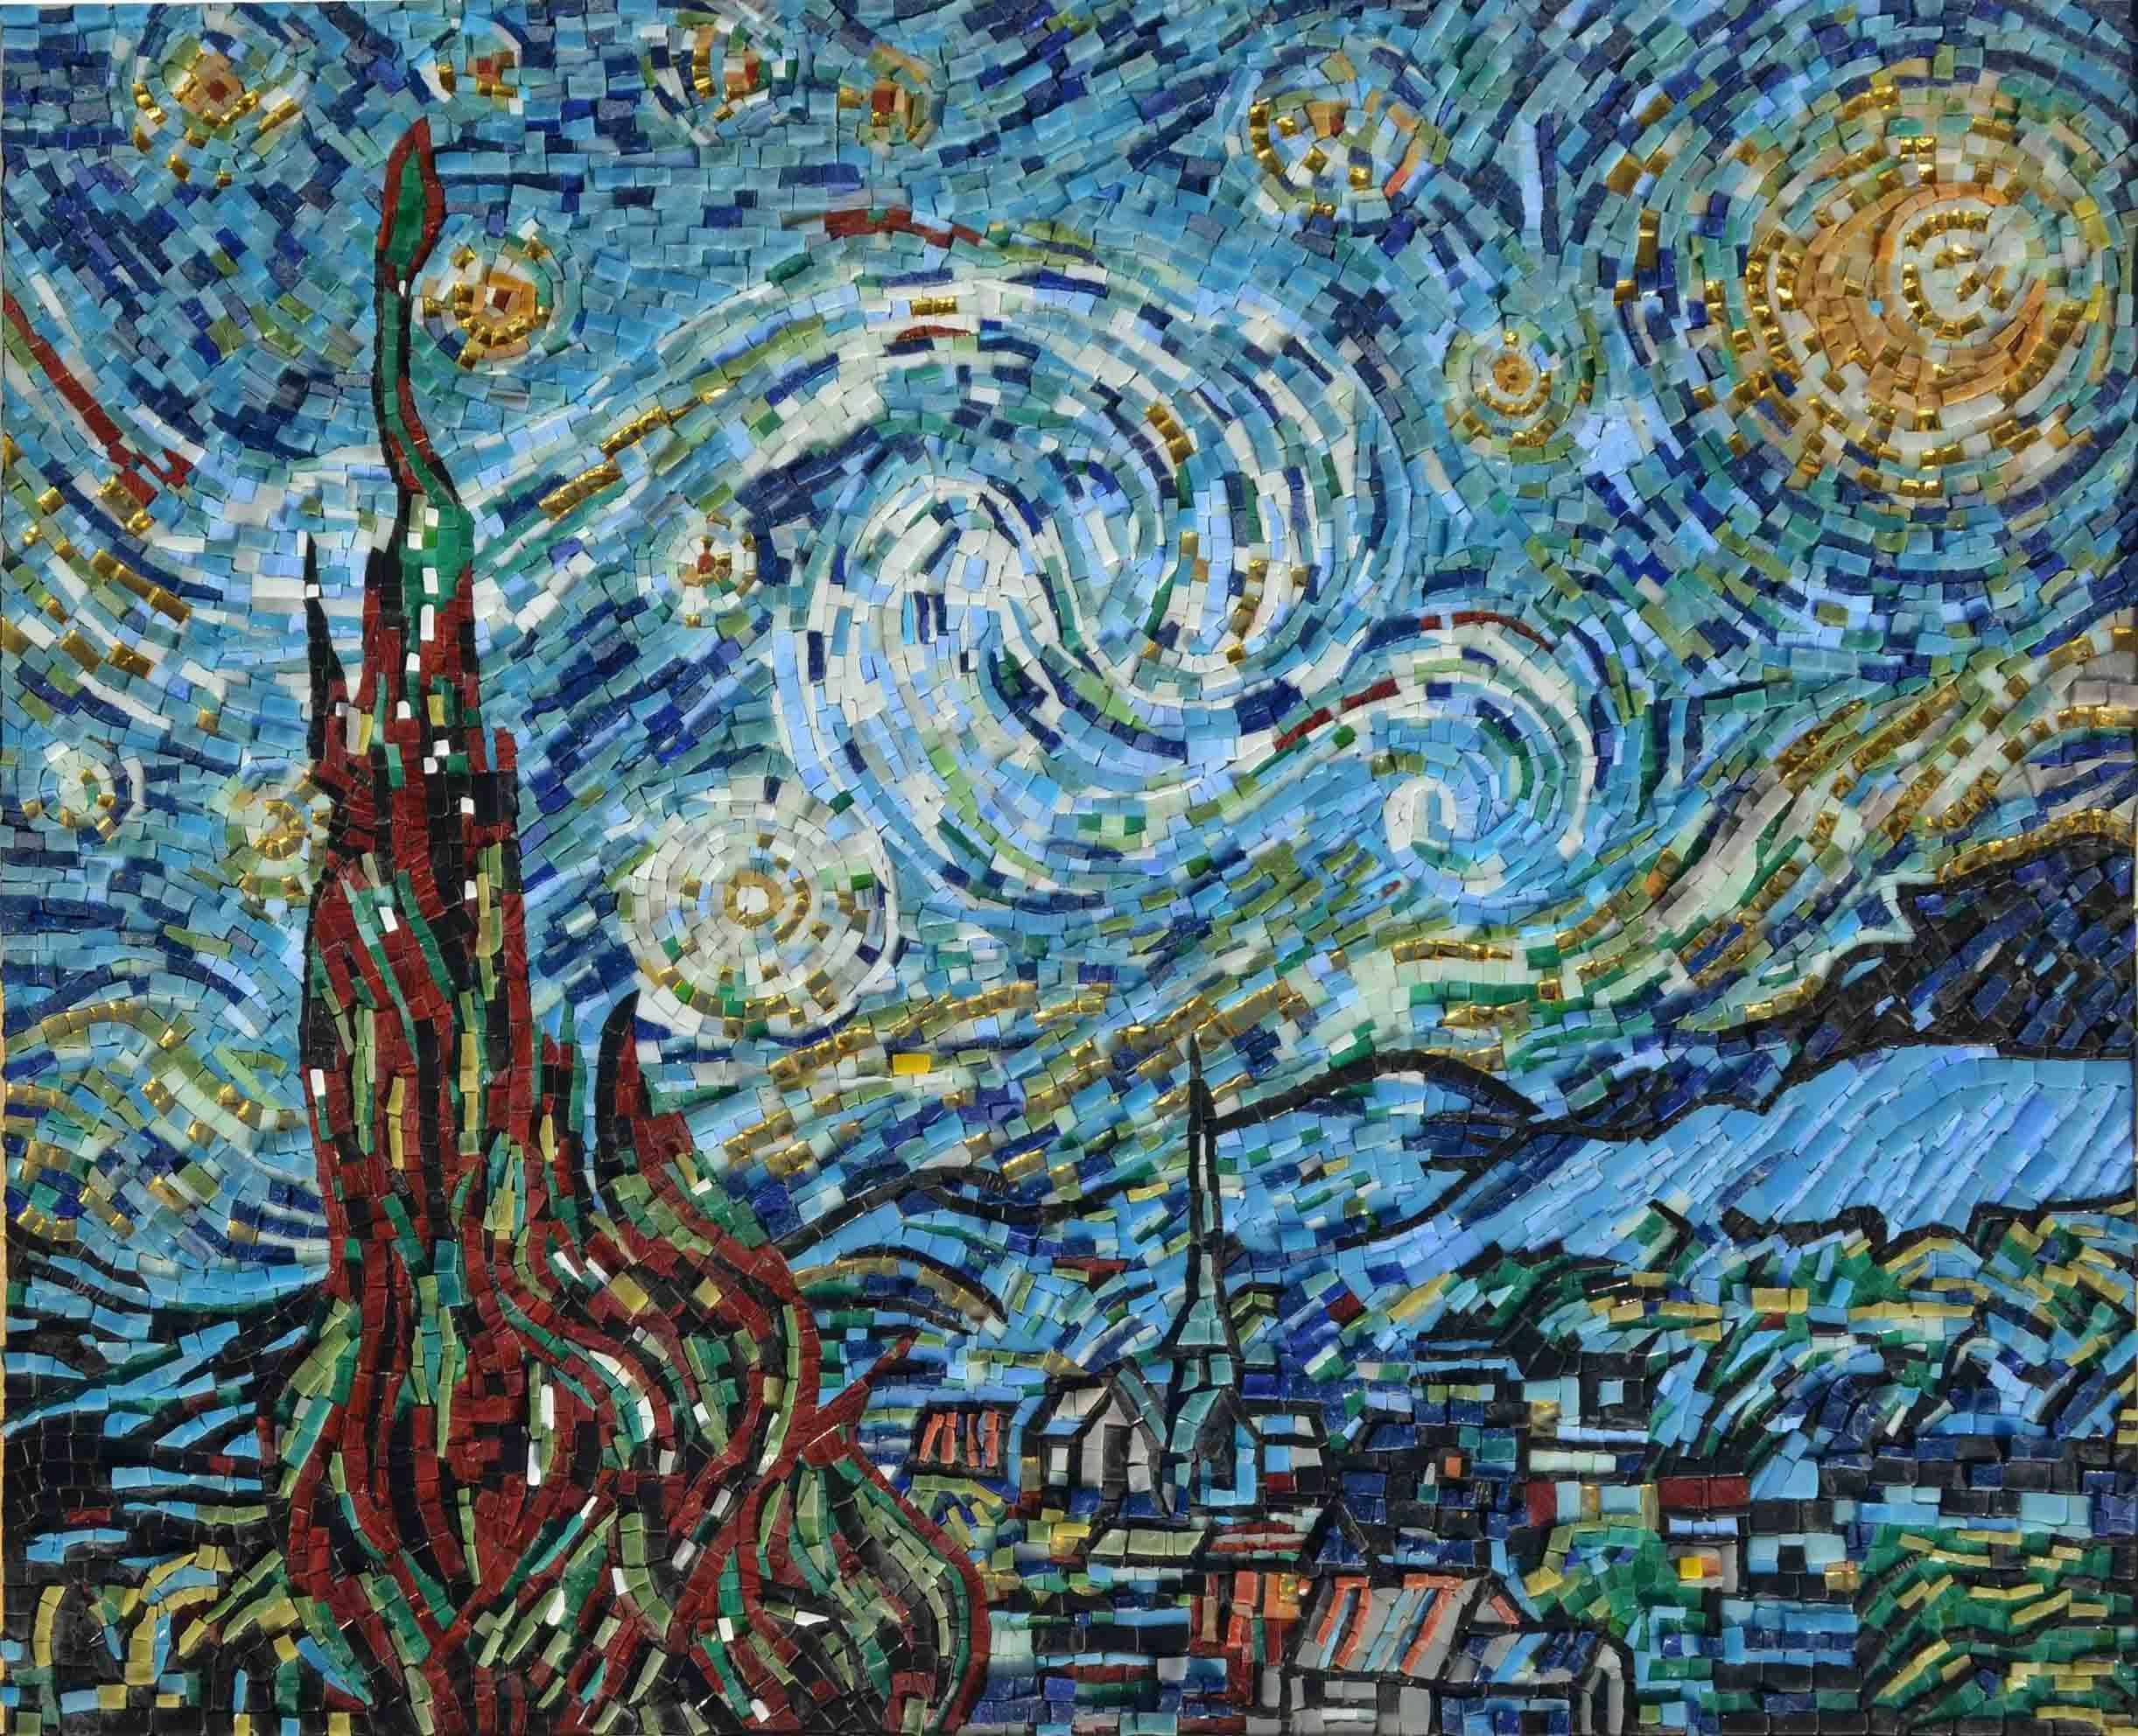 van gogh starry night and influence 4499 usd our lightweight wall tapestries feature vivid colors and crisp lines, giving you an awesome centerpiece for any space our tapestries aren't just wall hangings either - they're durable enough to use as tablecloths or picnic blankets.